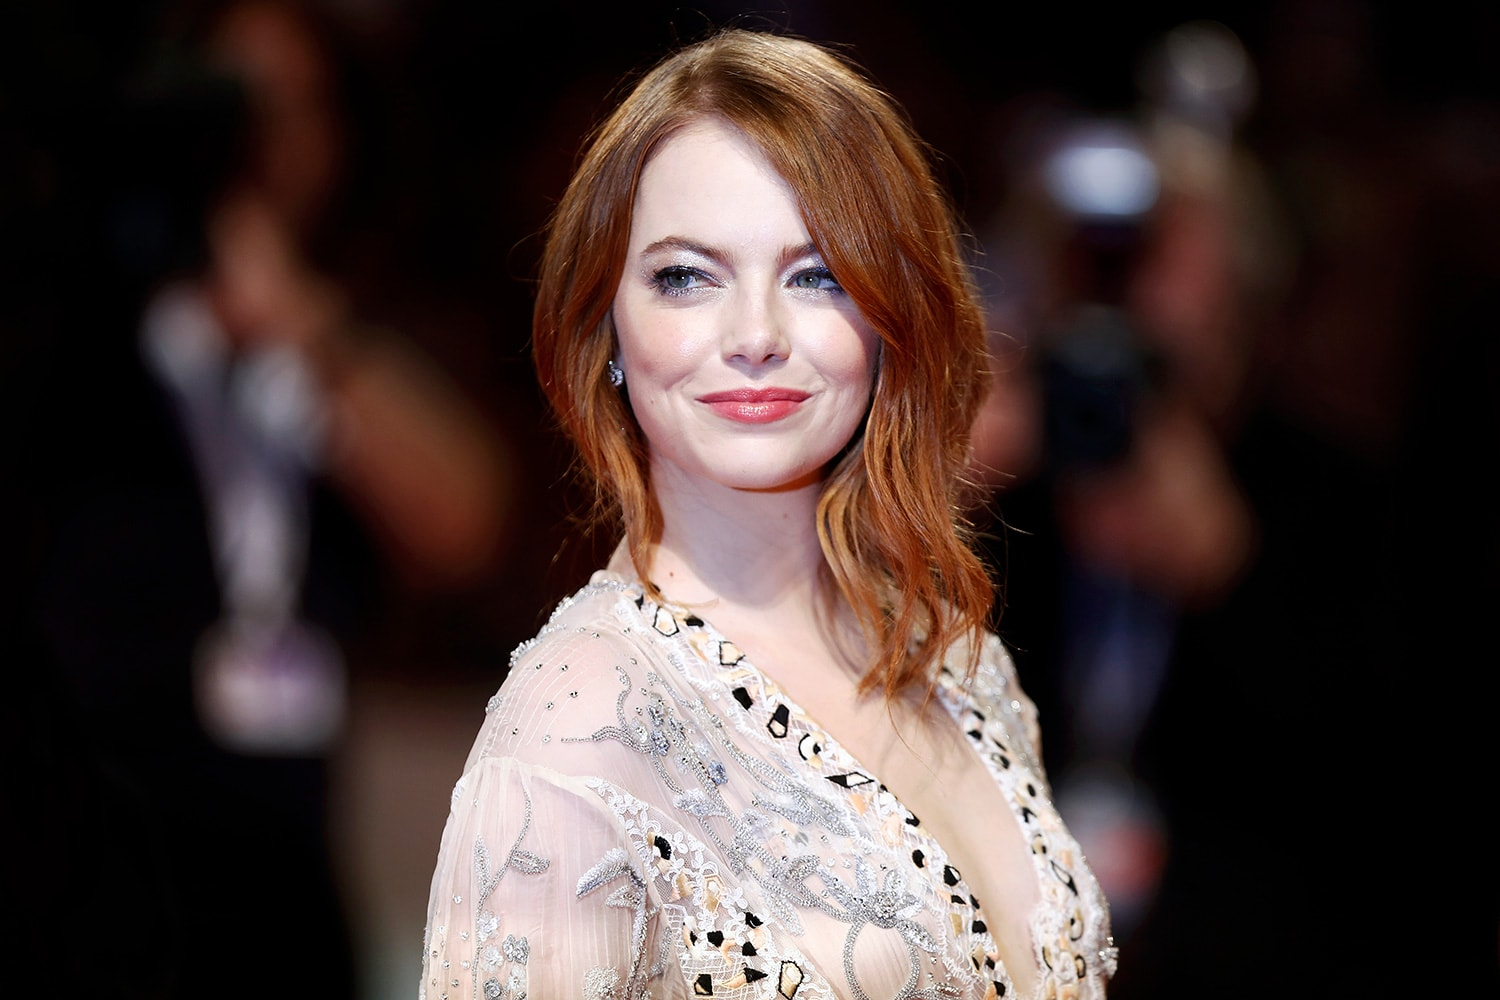 Emma Stone's Engagement Ring: Why Pearls Are Making a Wedding Comeback